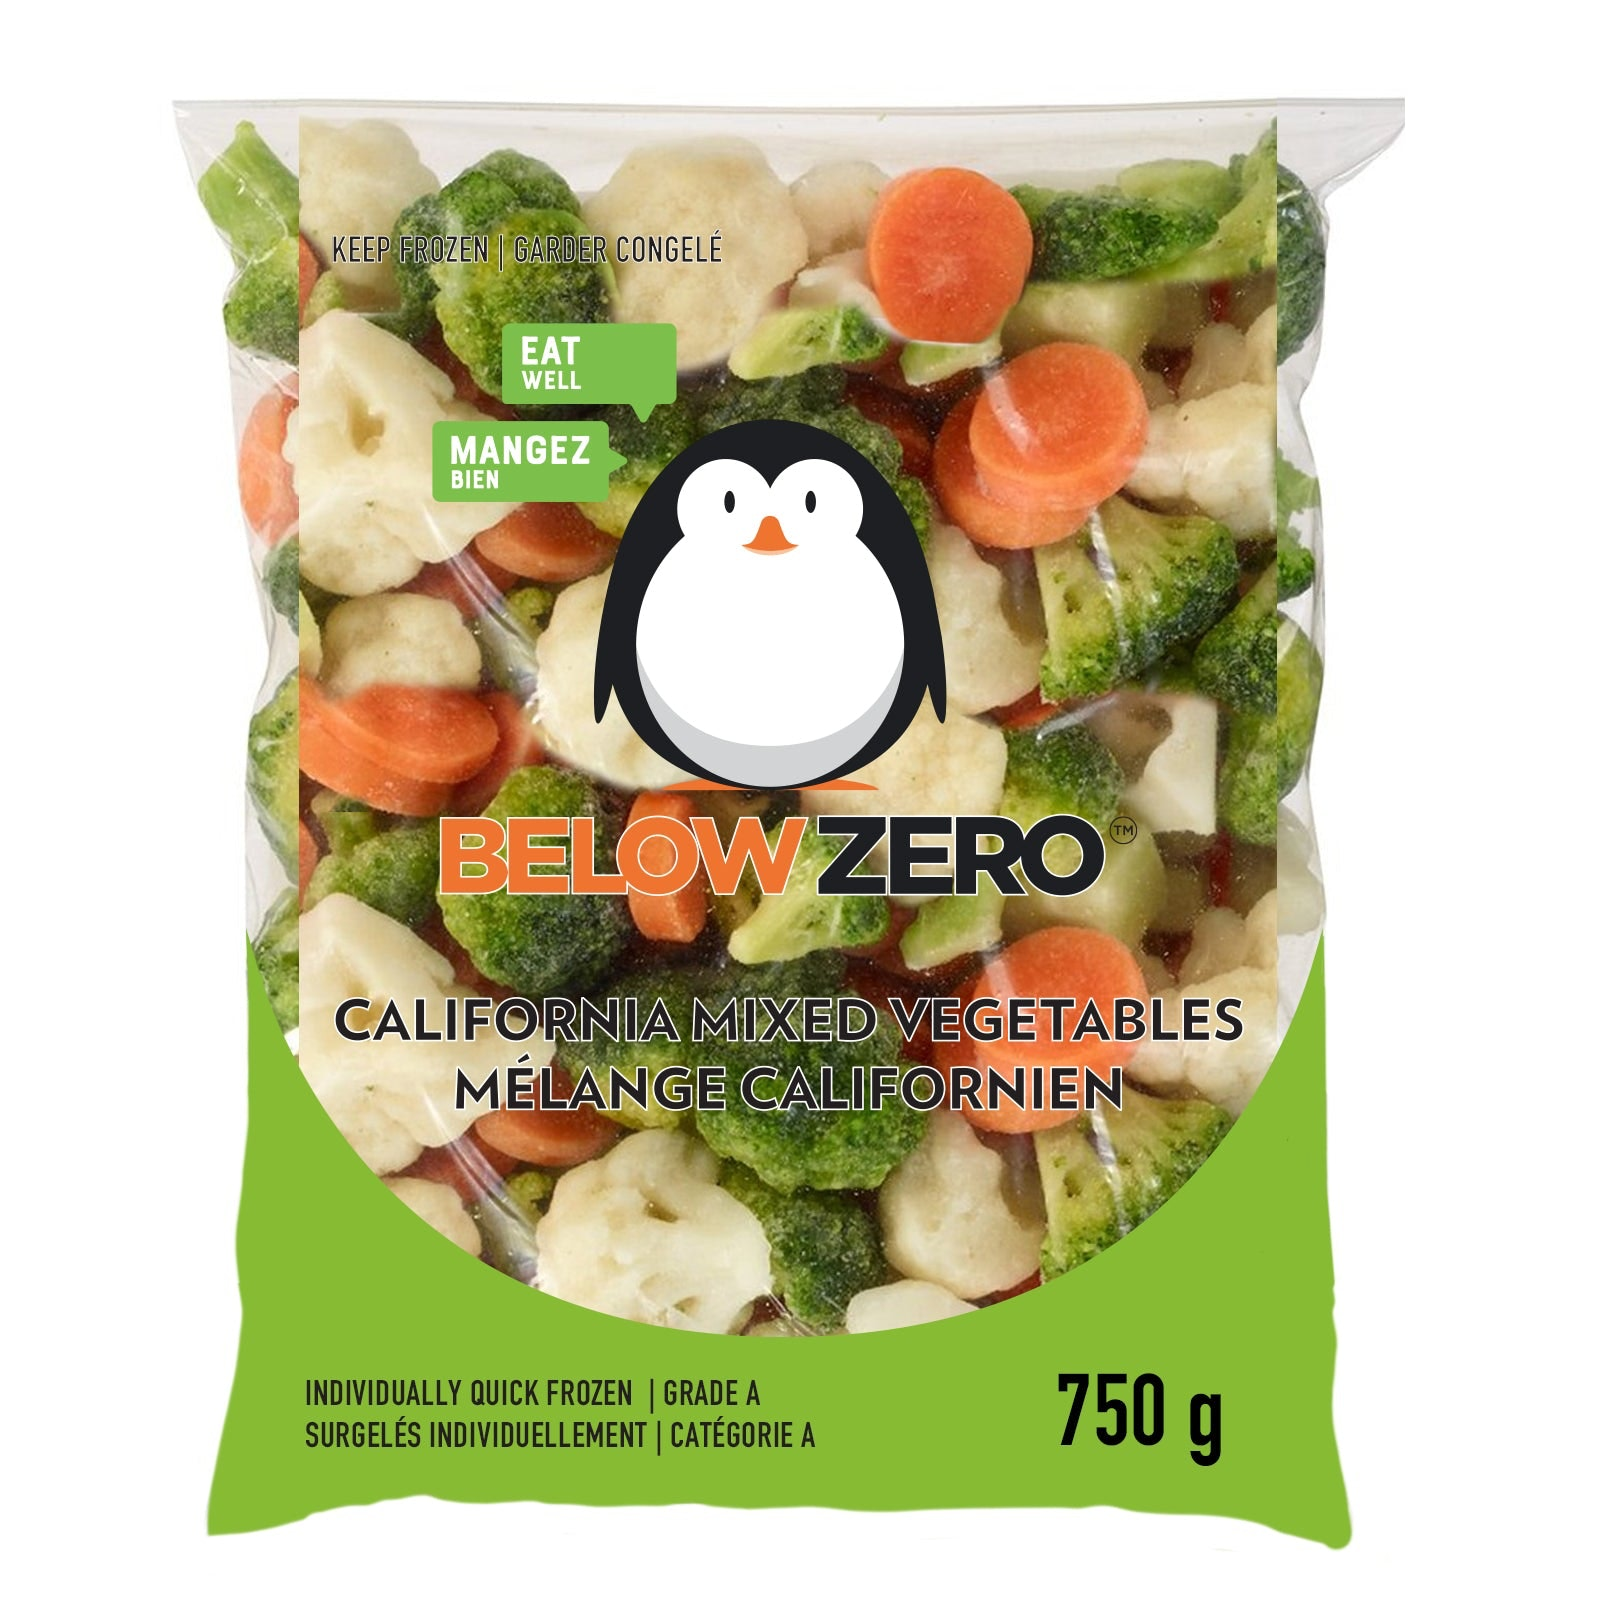 BELOW ZERO California Mixed Vegetables